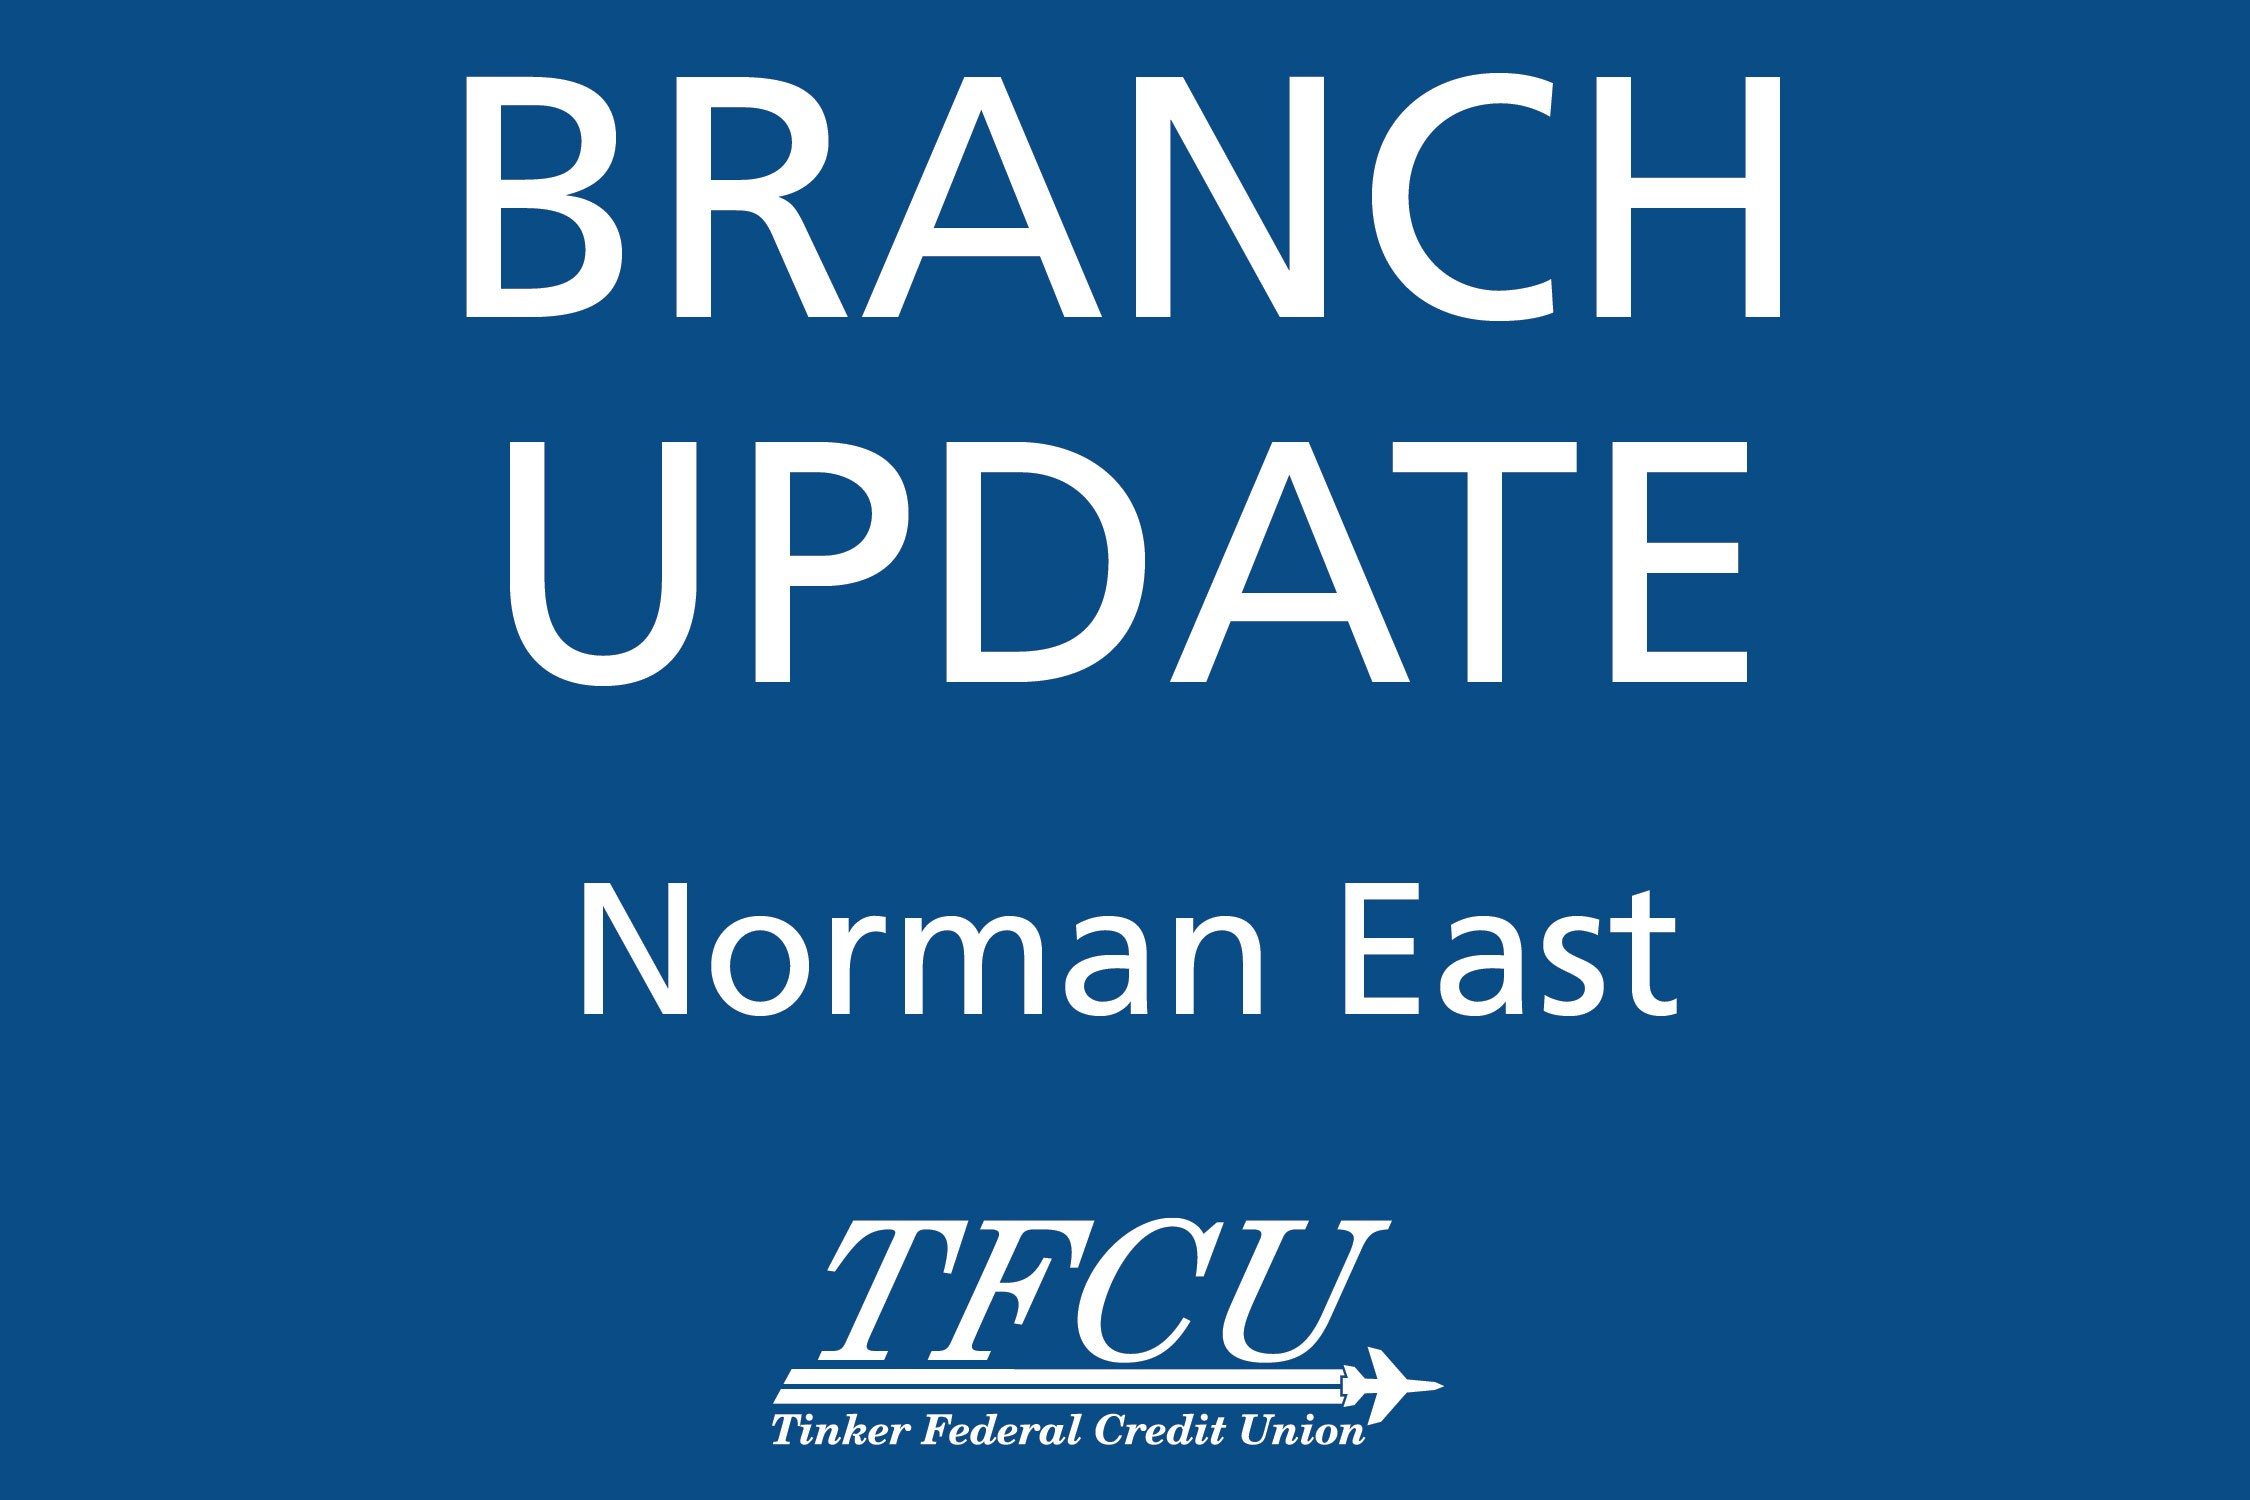 Branch Update Norman East